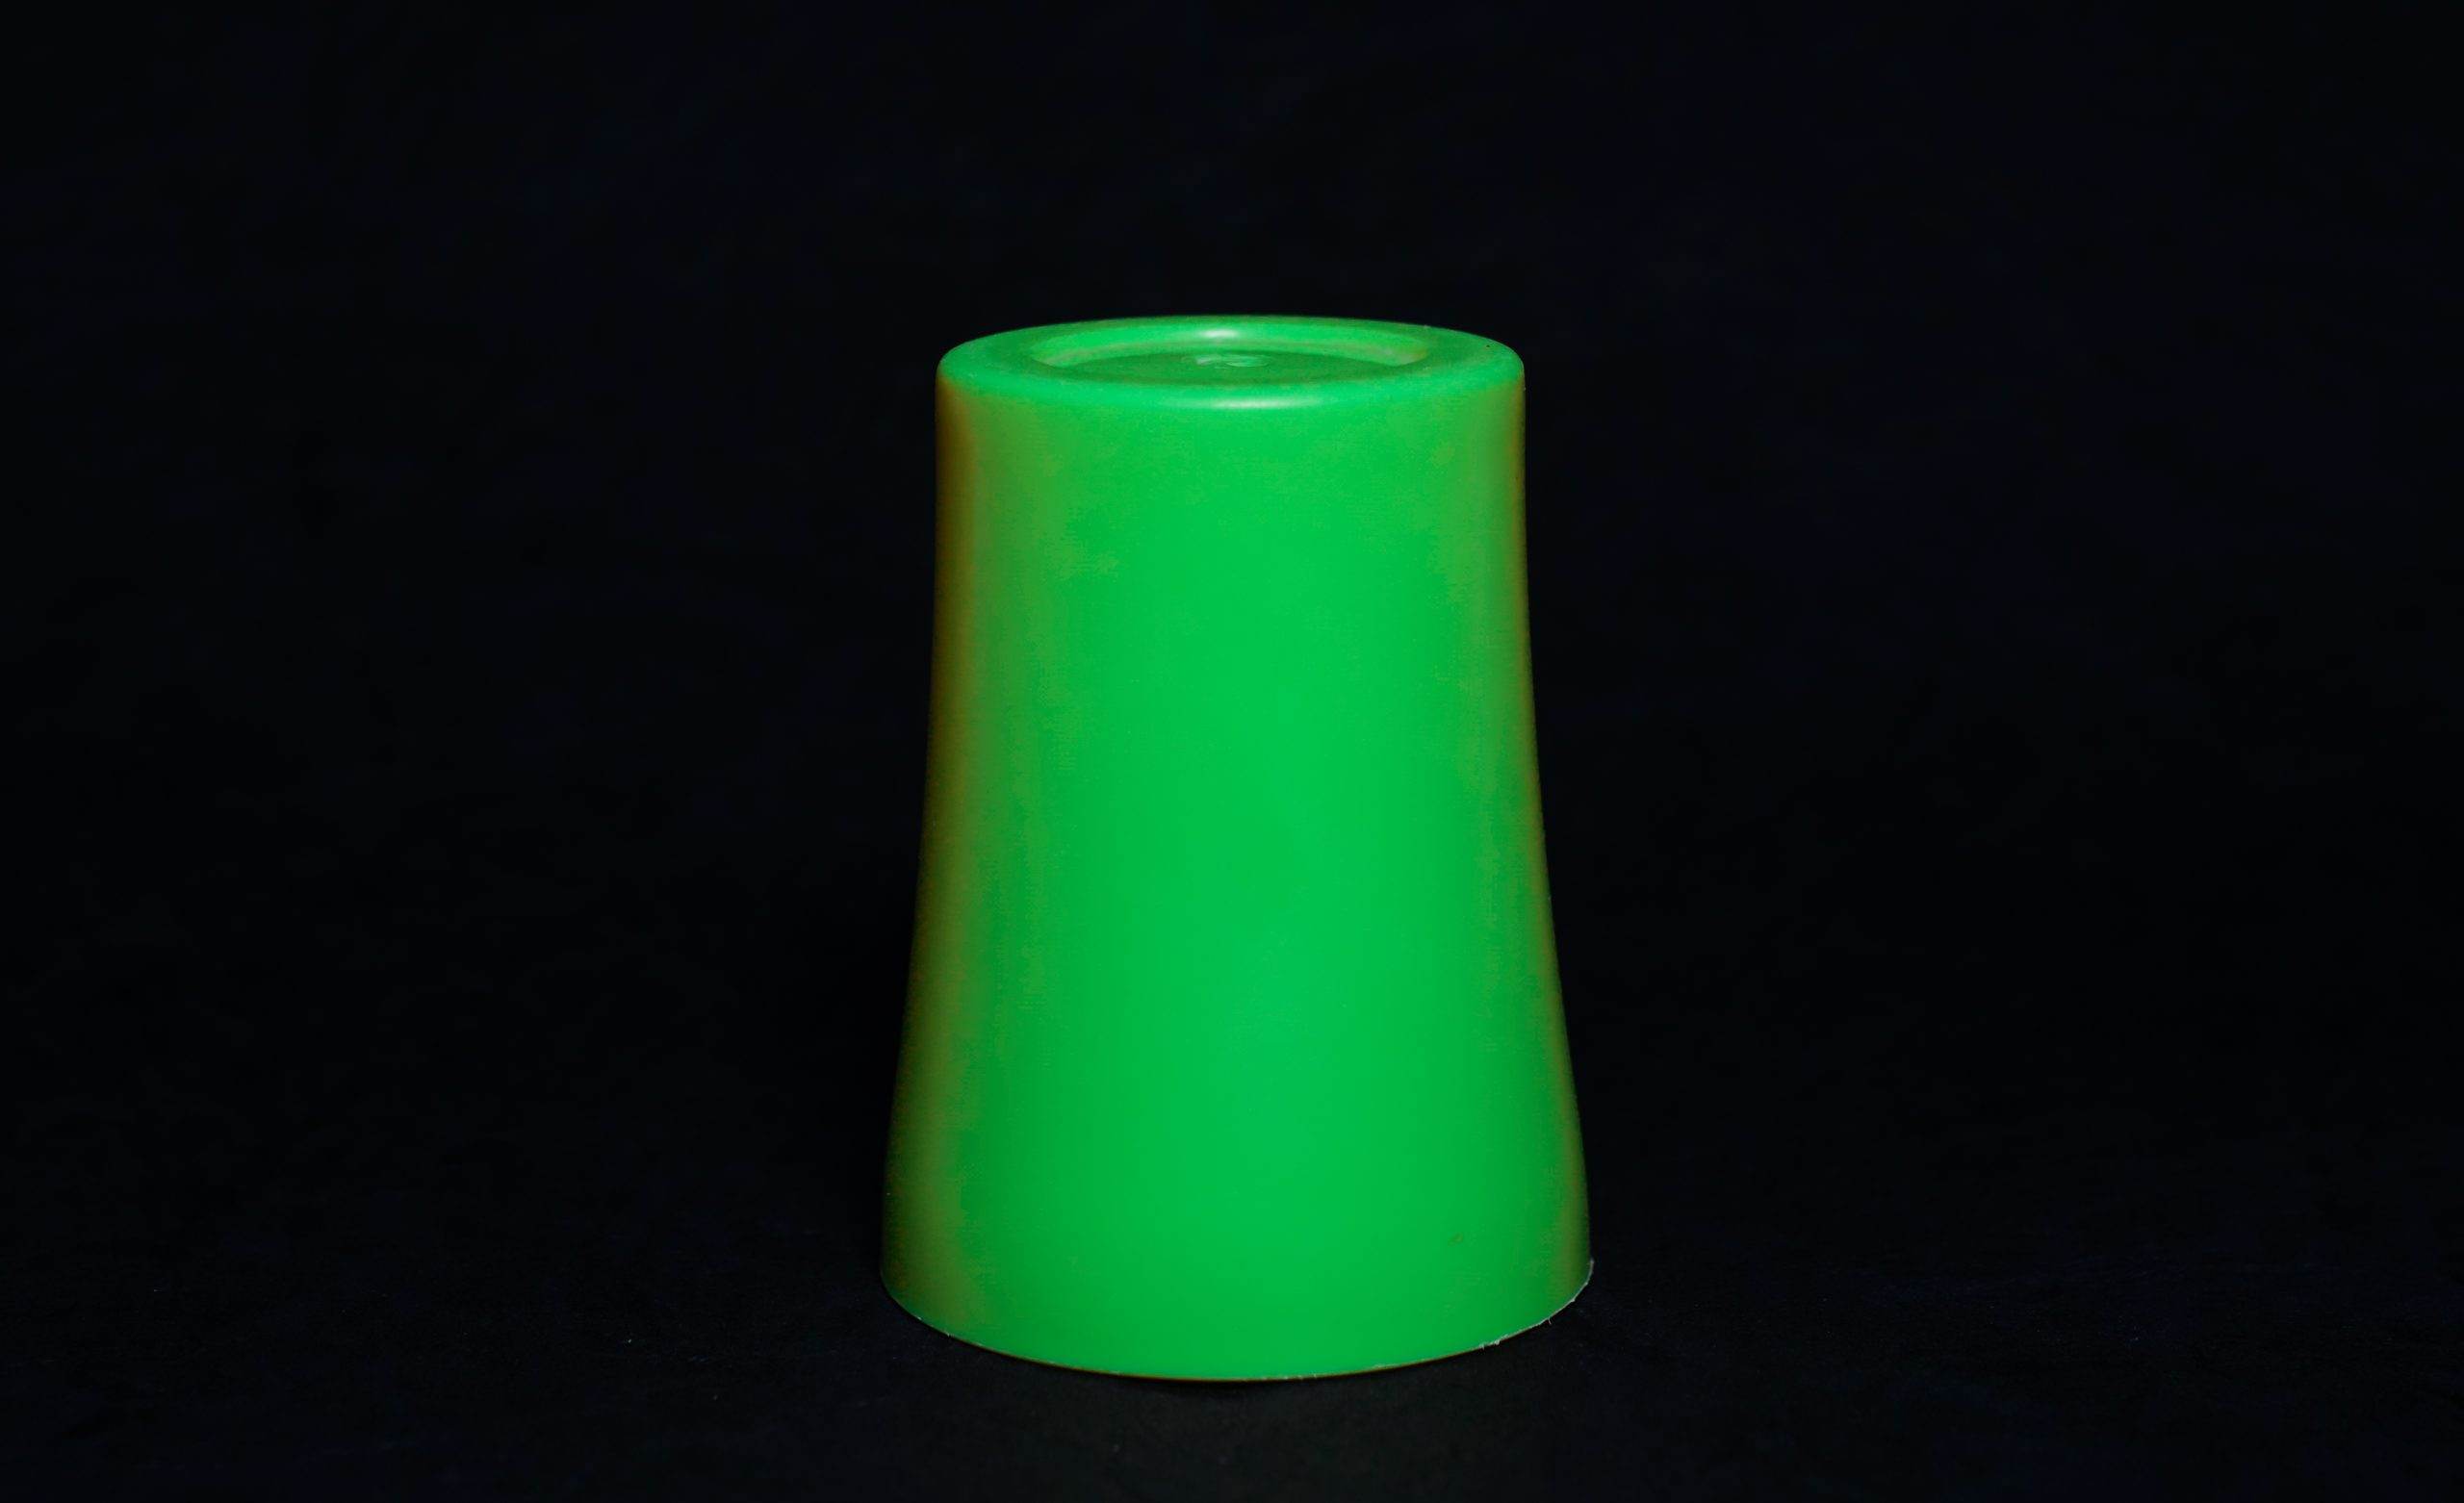 A bottom up plastic cup